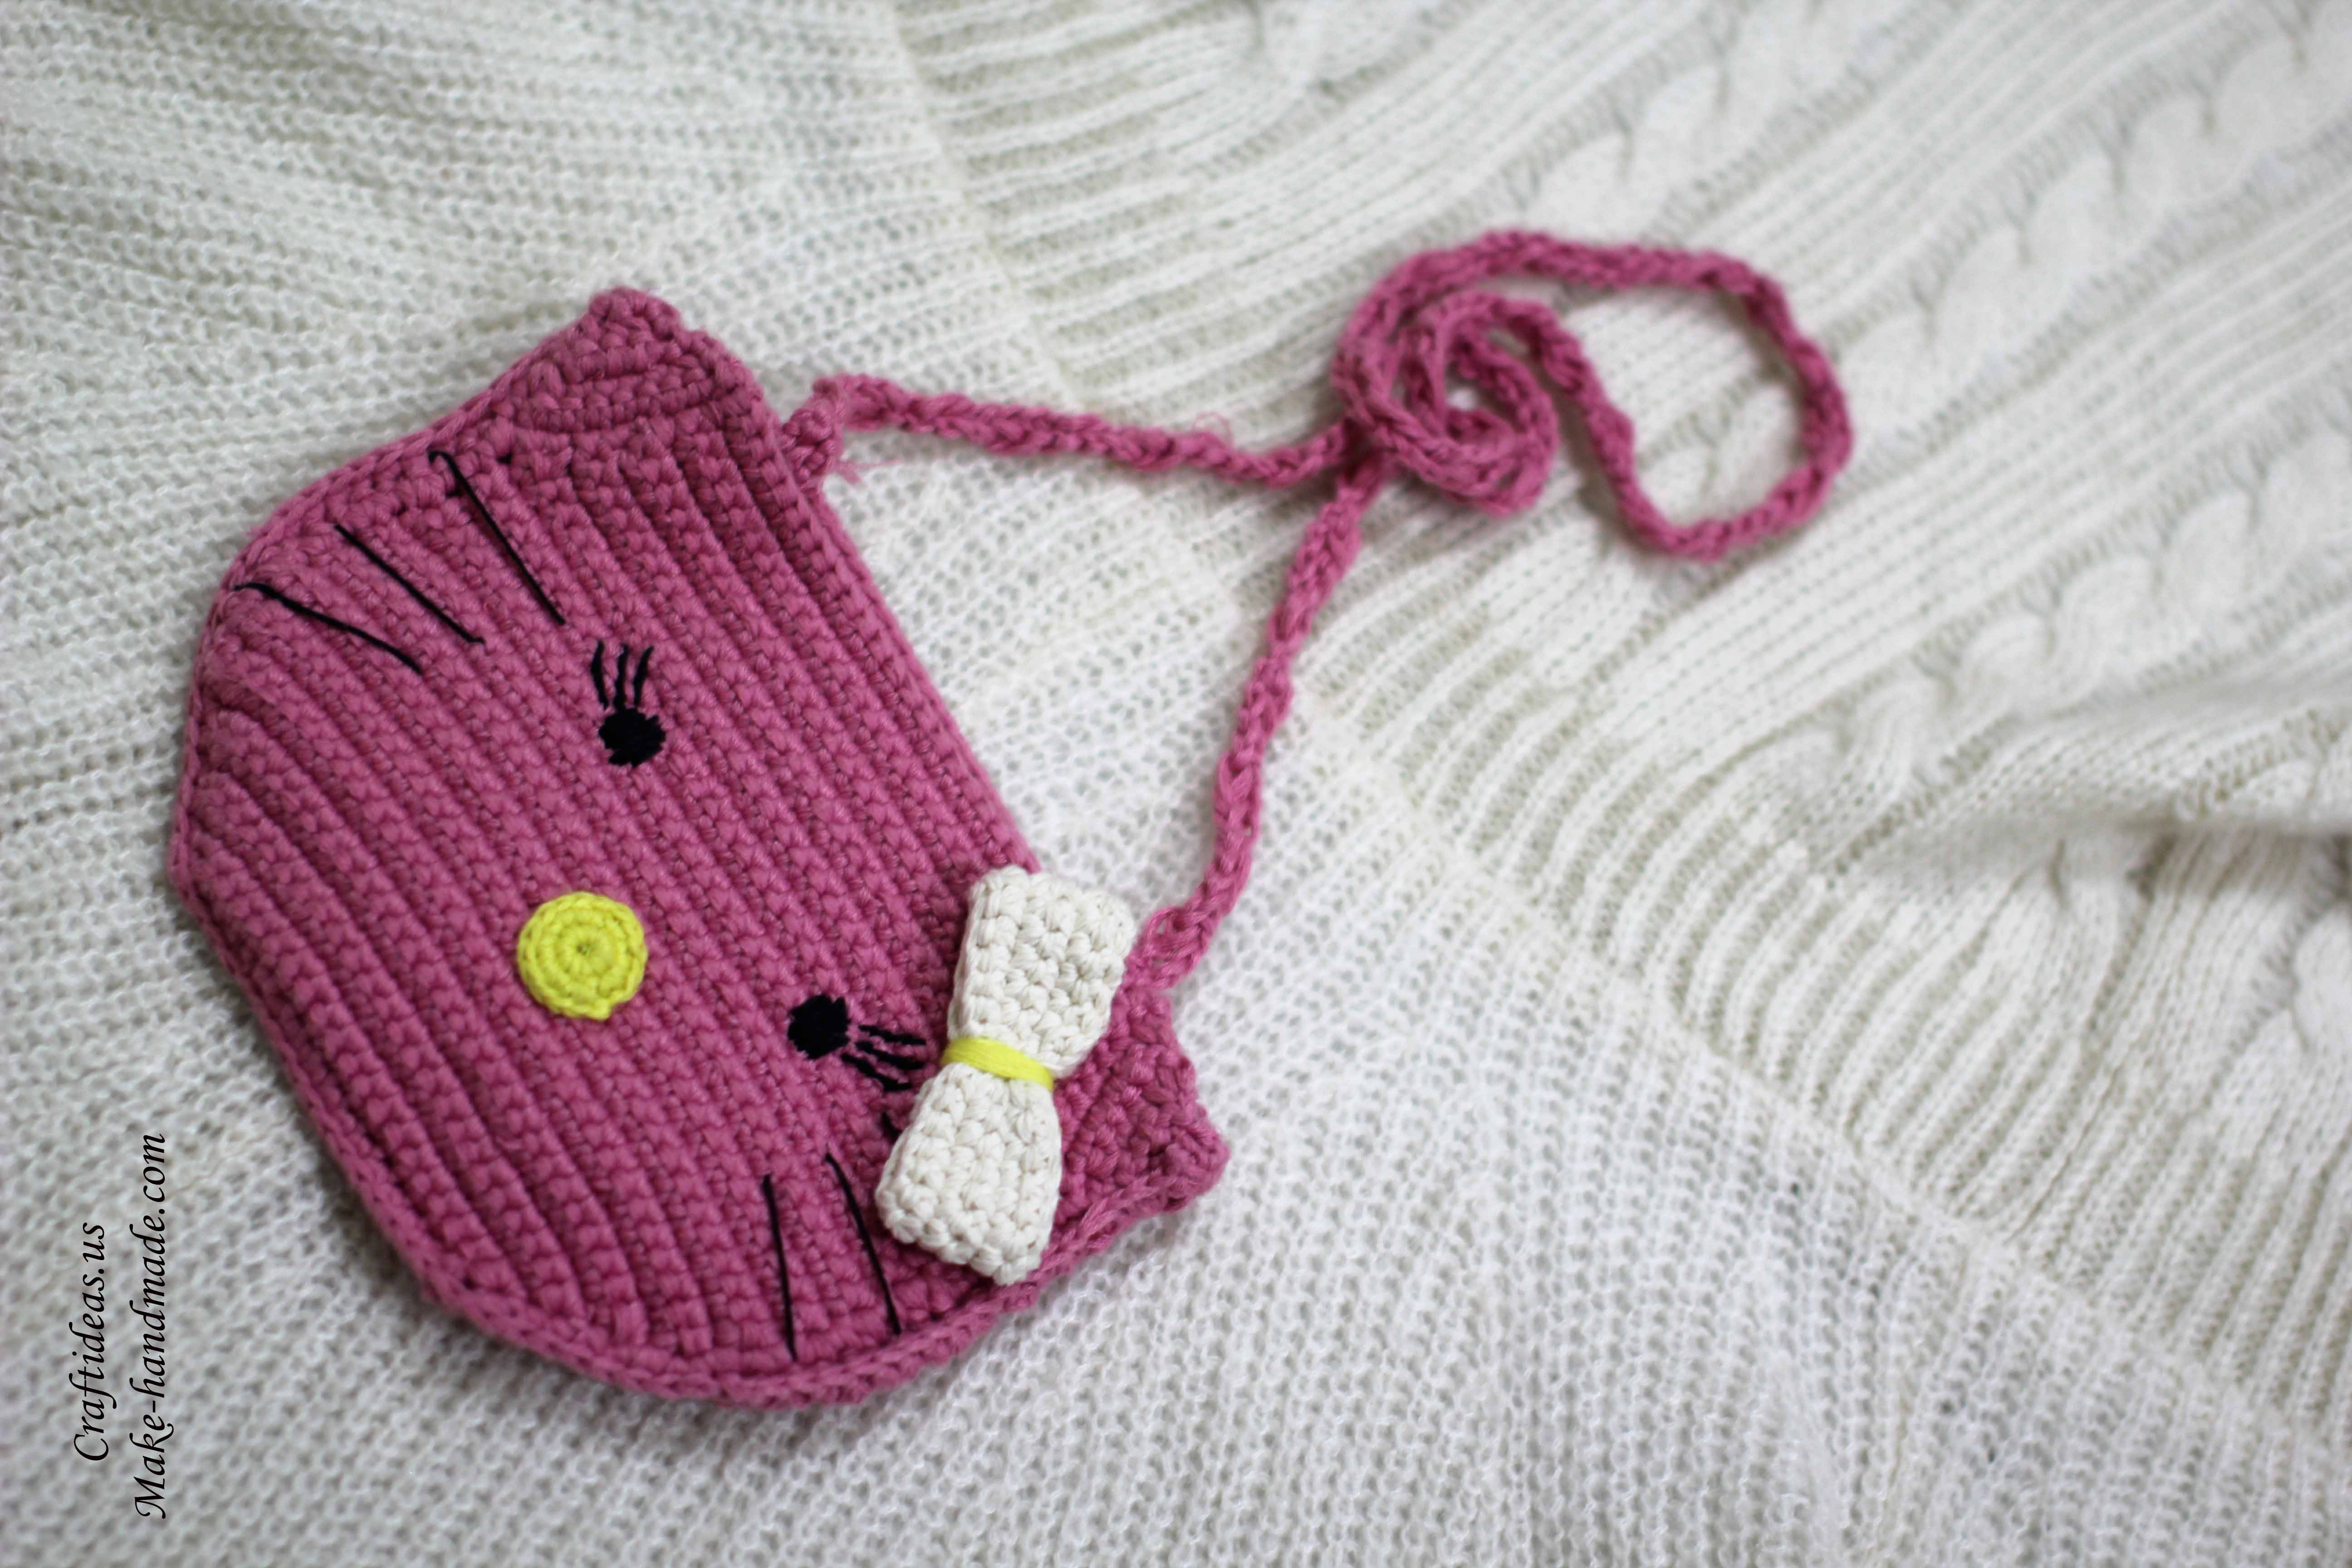 Knitting Games Hello Kitty : Crochet hello kitty bag for kids craft ideas